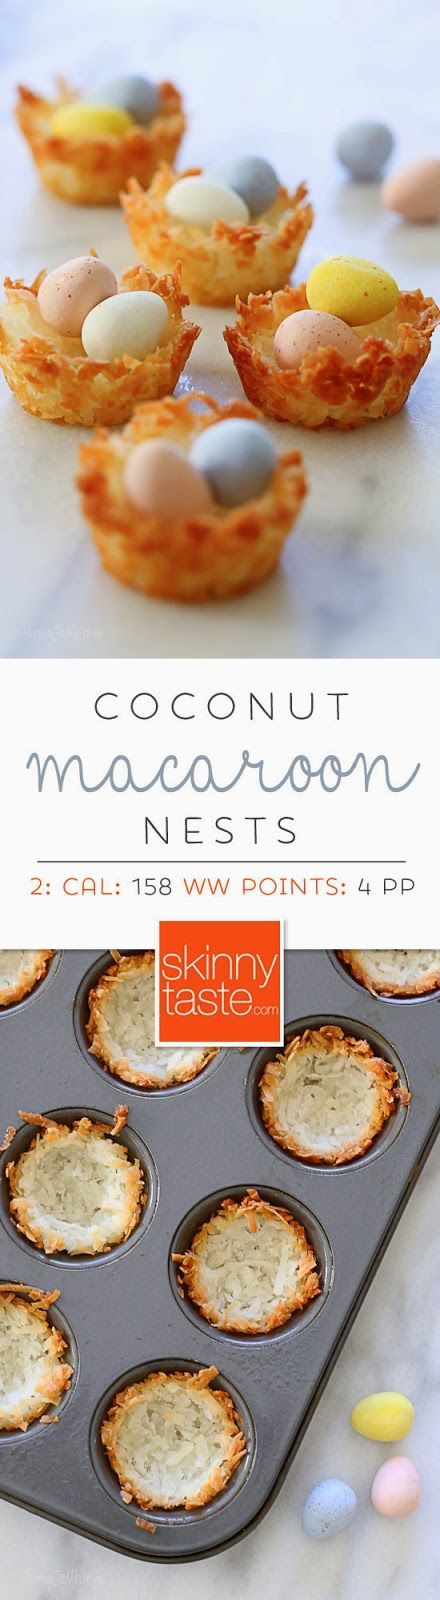 Coconut Macaroon Nests         |          Skinnytaste Good.